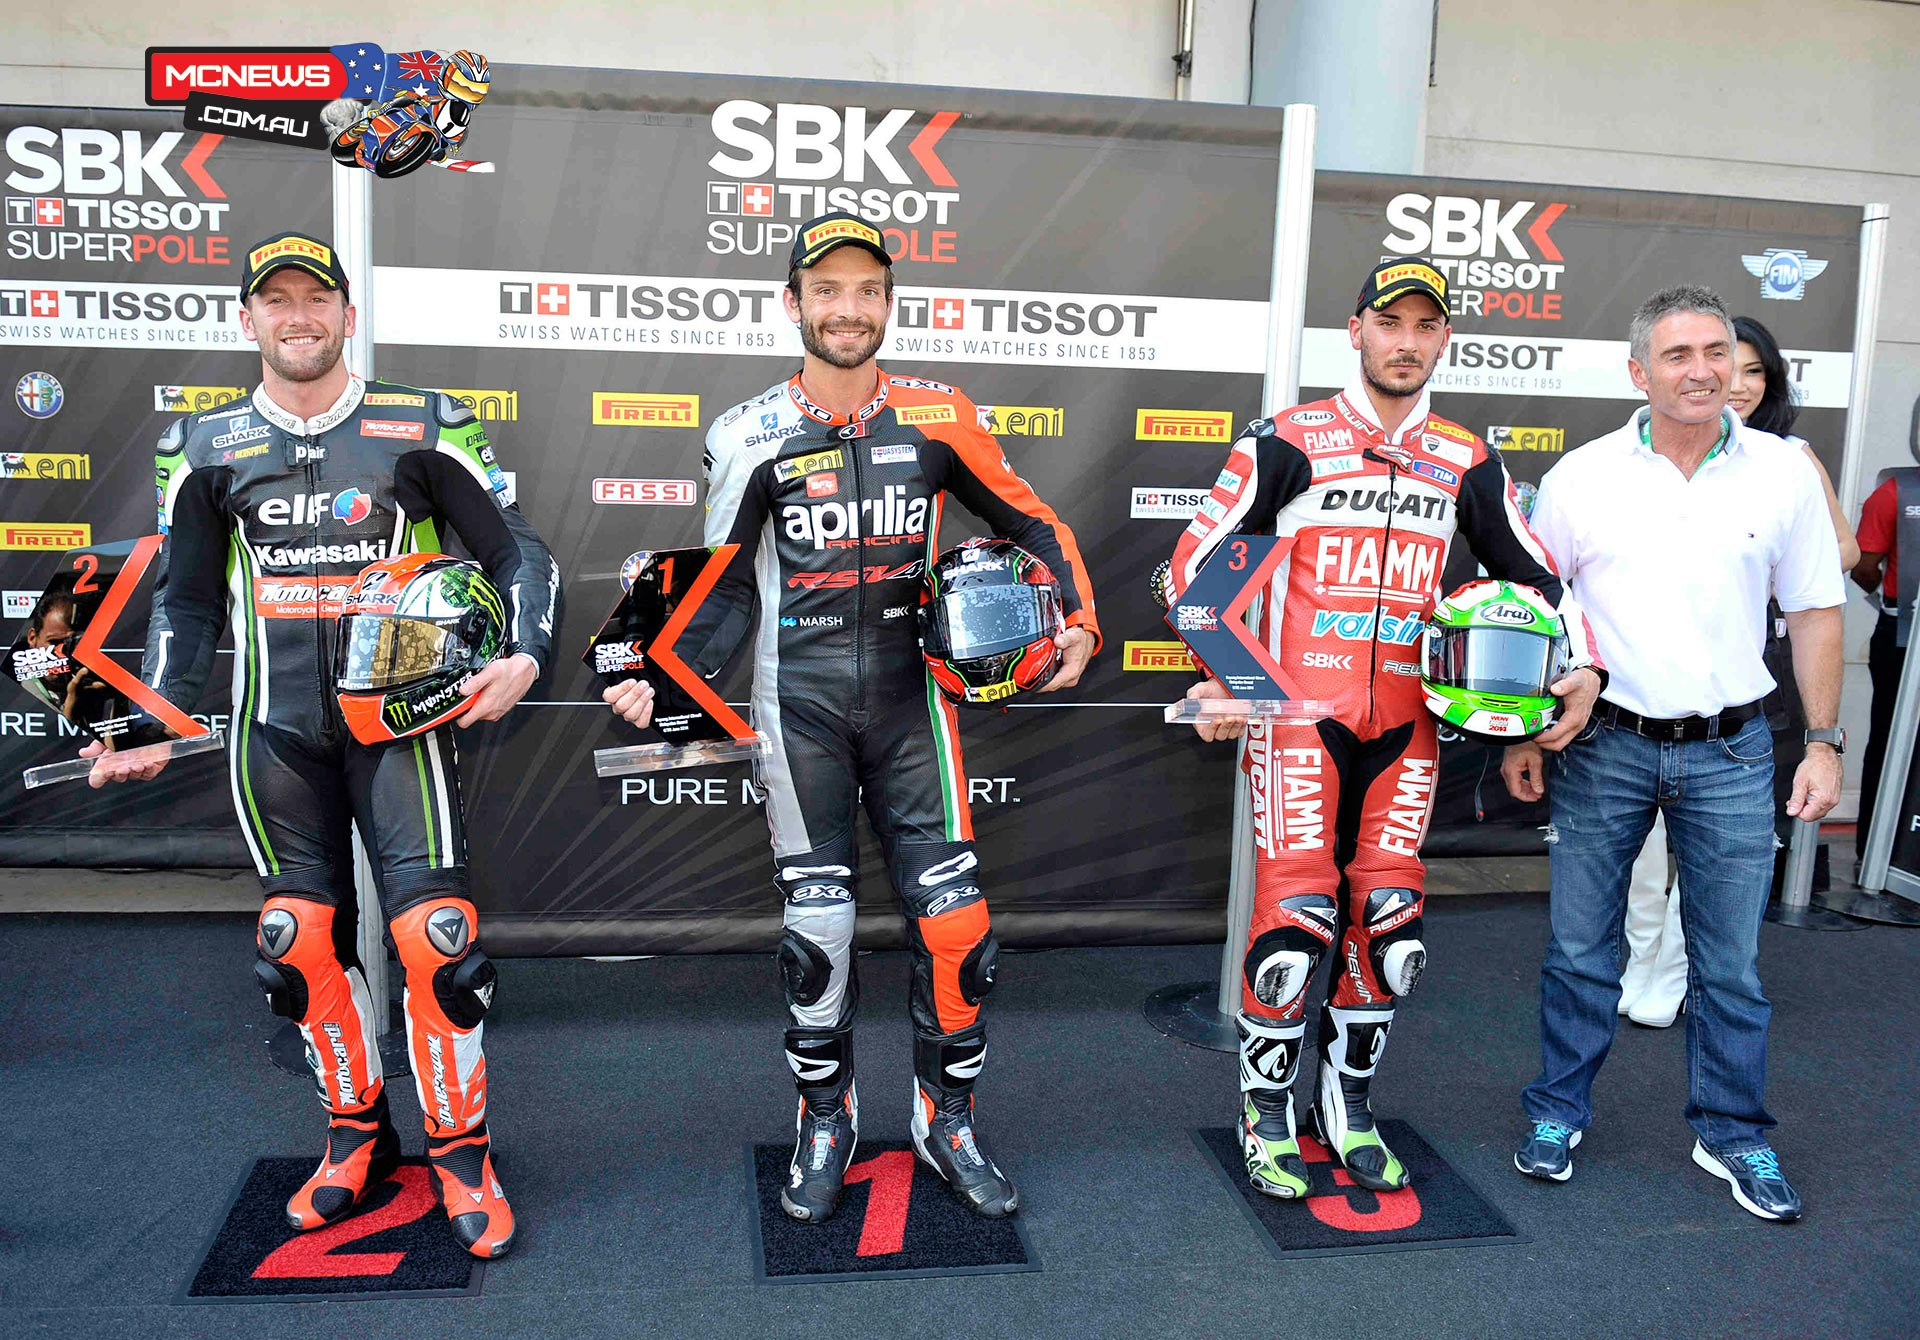 With high track and air temperatures the first ever Tissot-Superpole at the Sepang International Circuit has been won by Sylvain Guintoli (Aprilia Racing Team), who will start from pole position for the fourth time in his WSBK career.